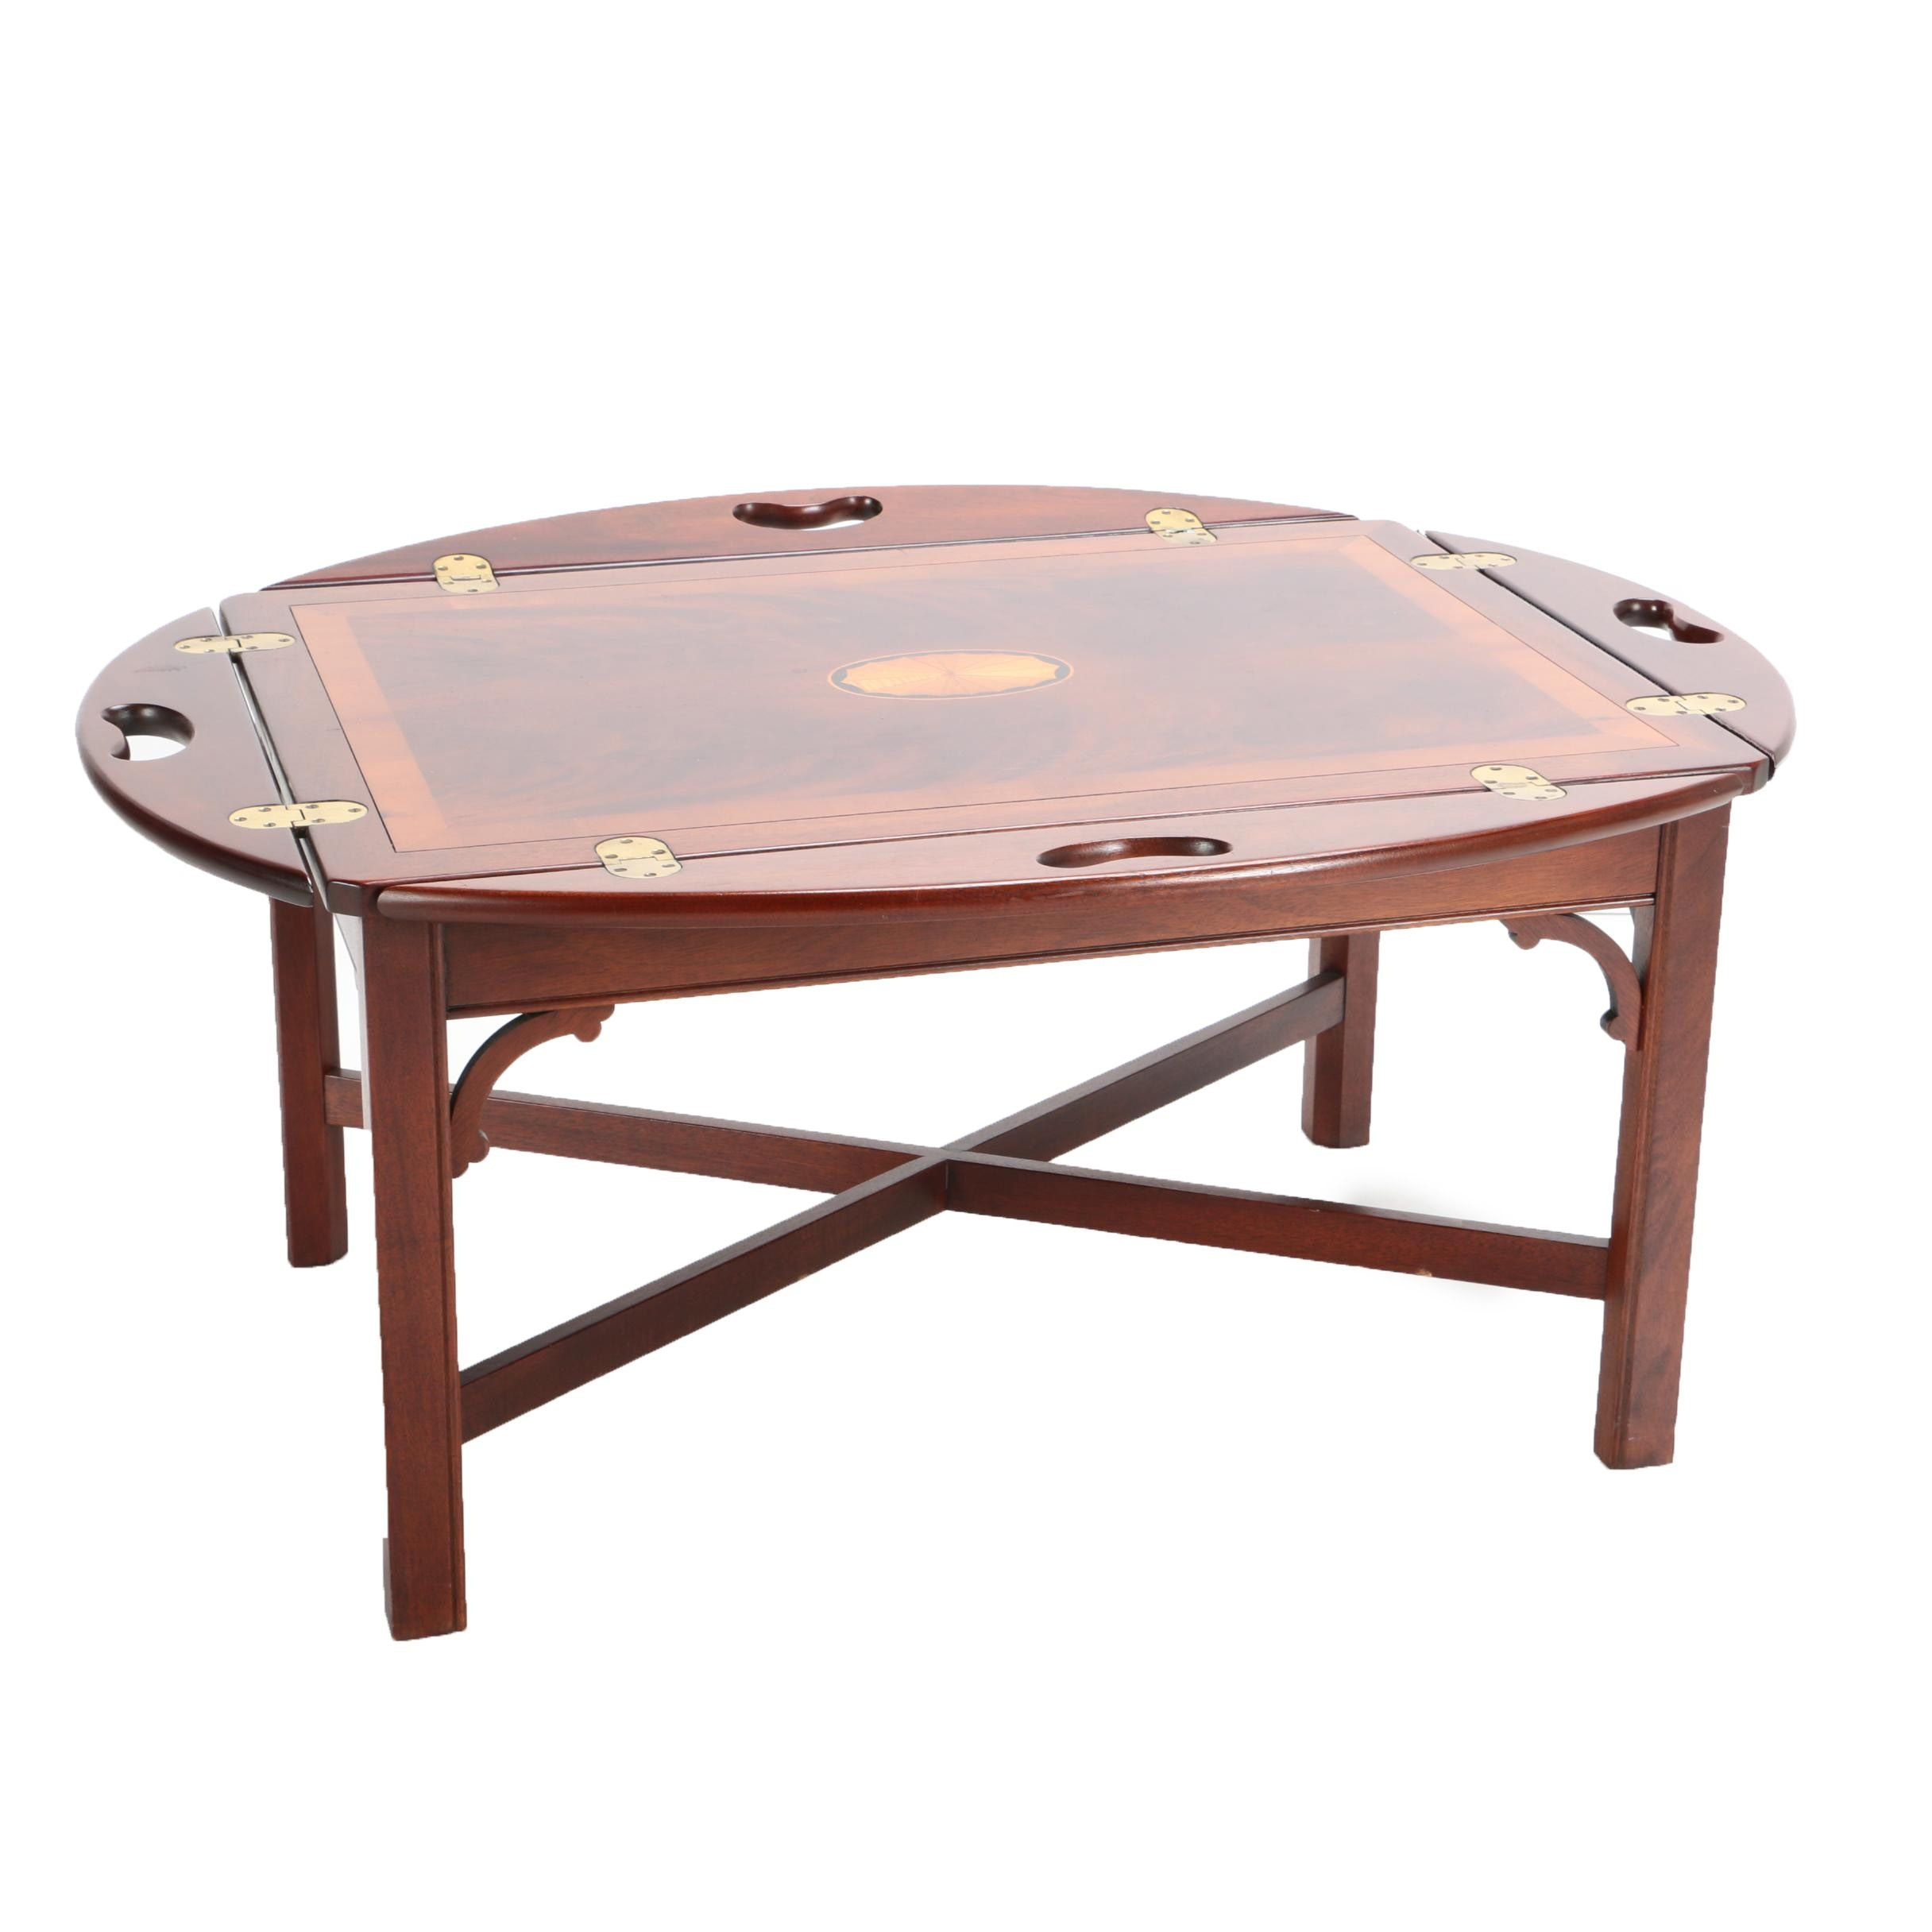 Federal Style Butler's Tray Coffee Table by Hekman Furniture Company